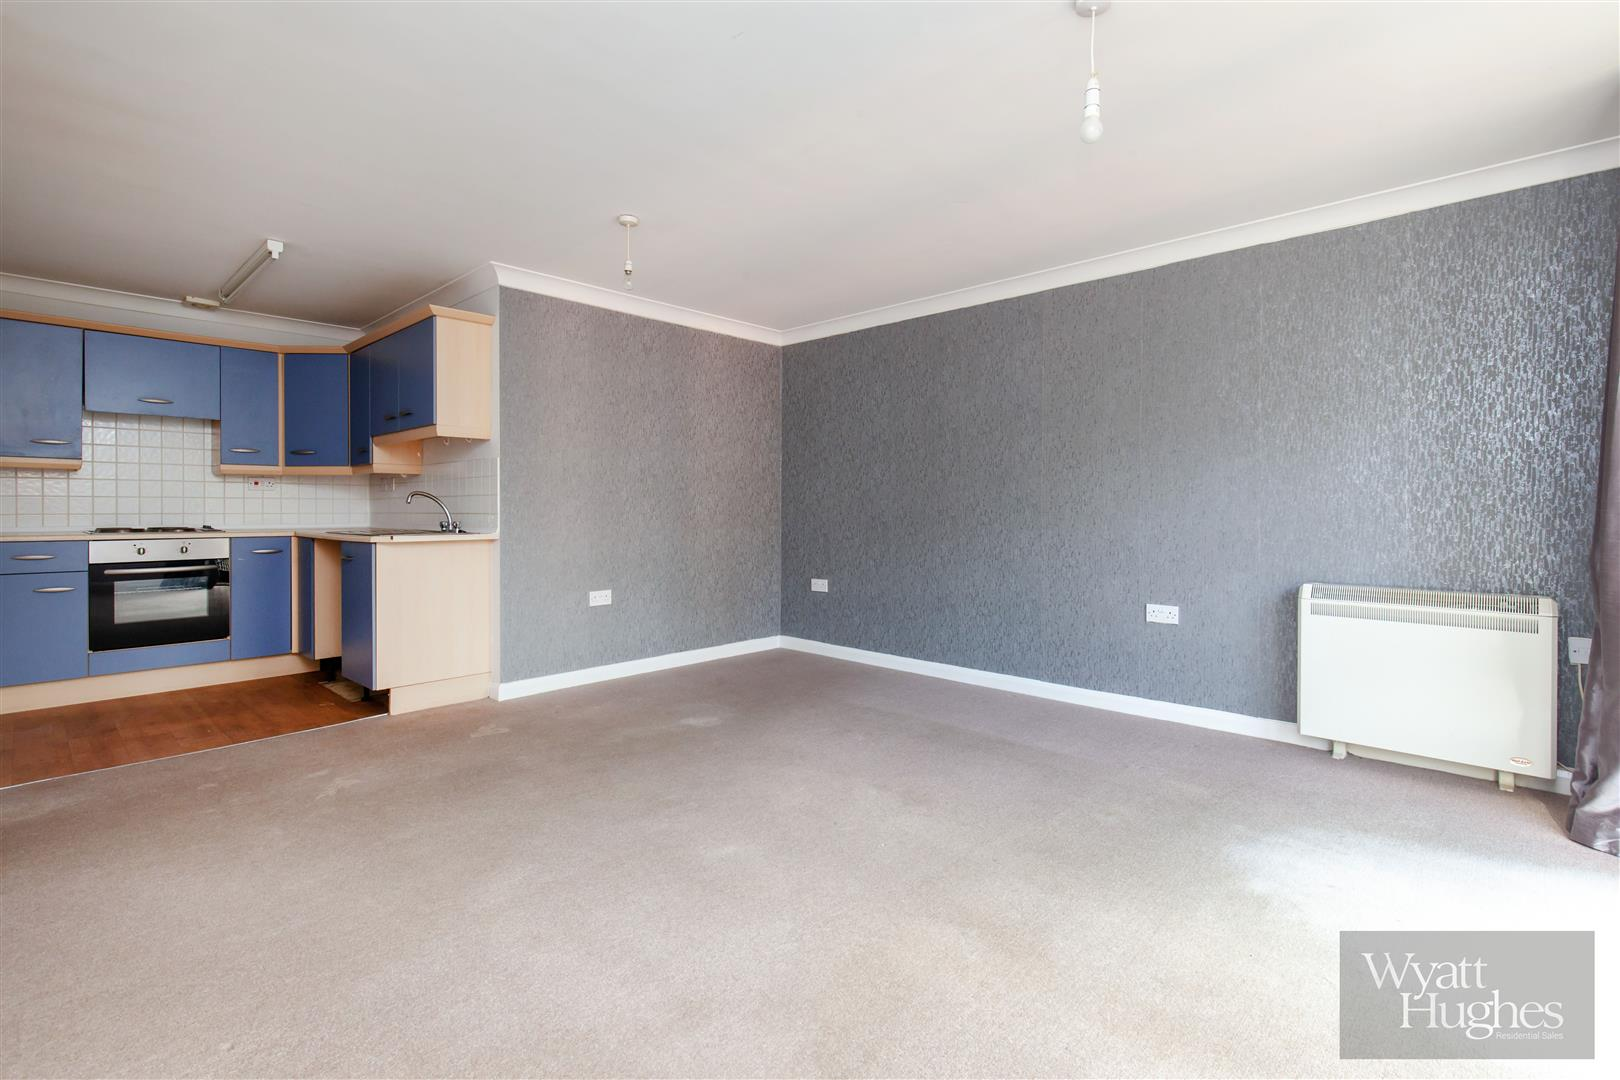 2 bed flat for sale in Woodland Vale Road, St. Leonards-On-Sea, TN37